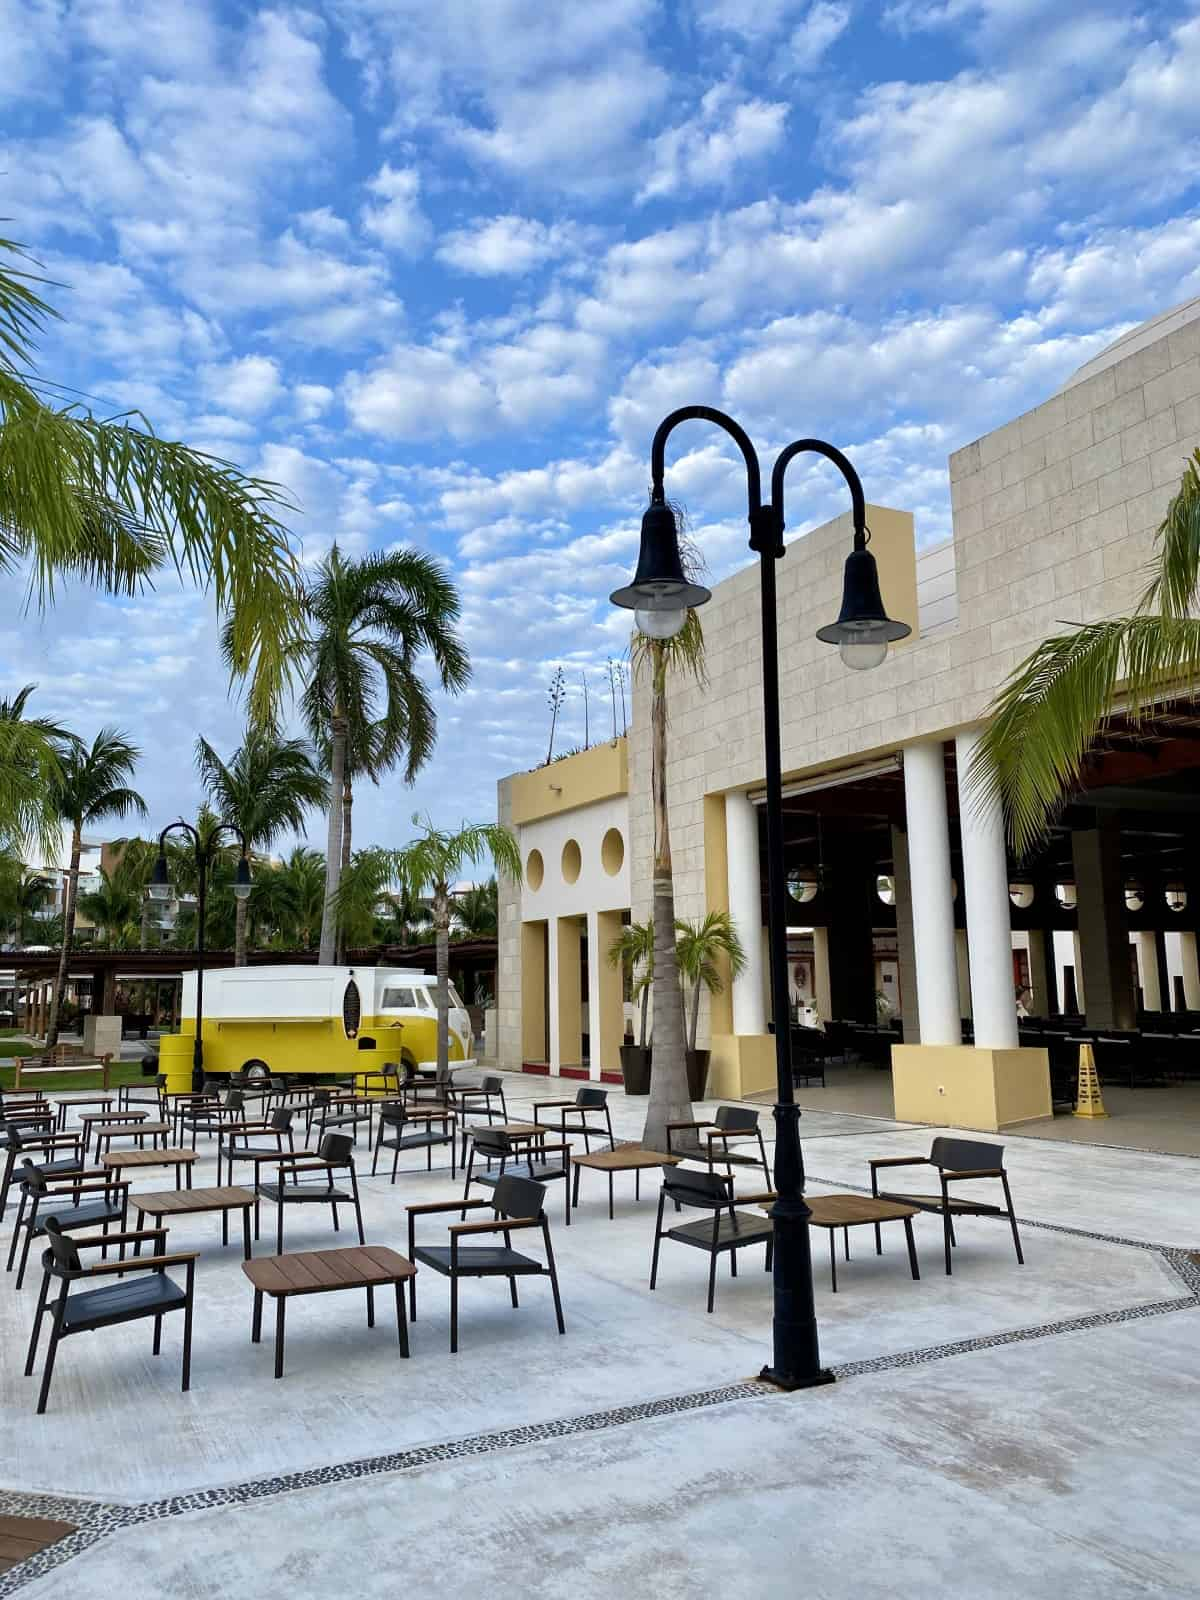 A review of what to expect at Excellence Playa Mujeres resort in Cancun, Mexico